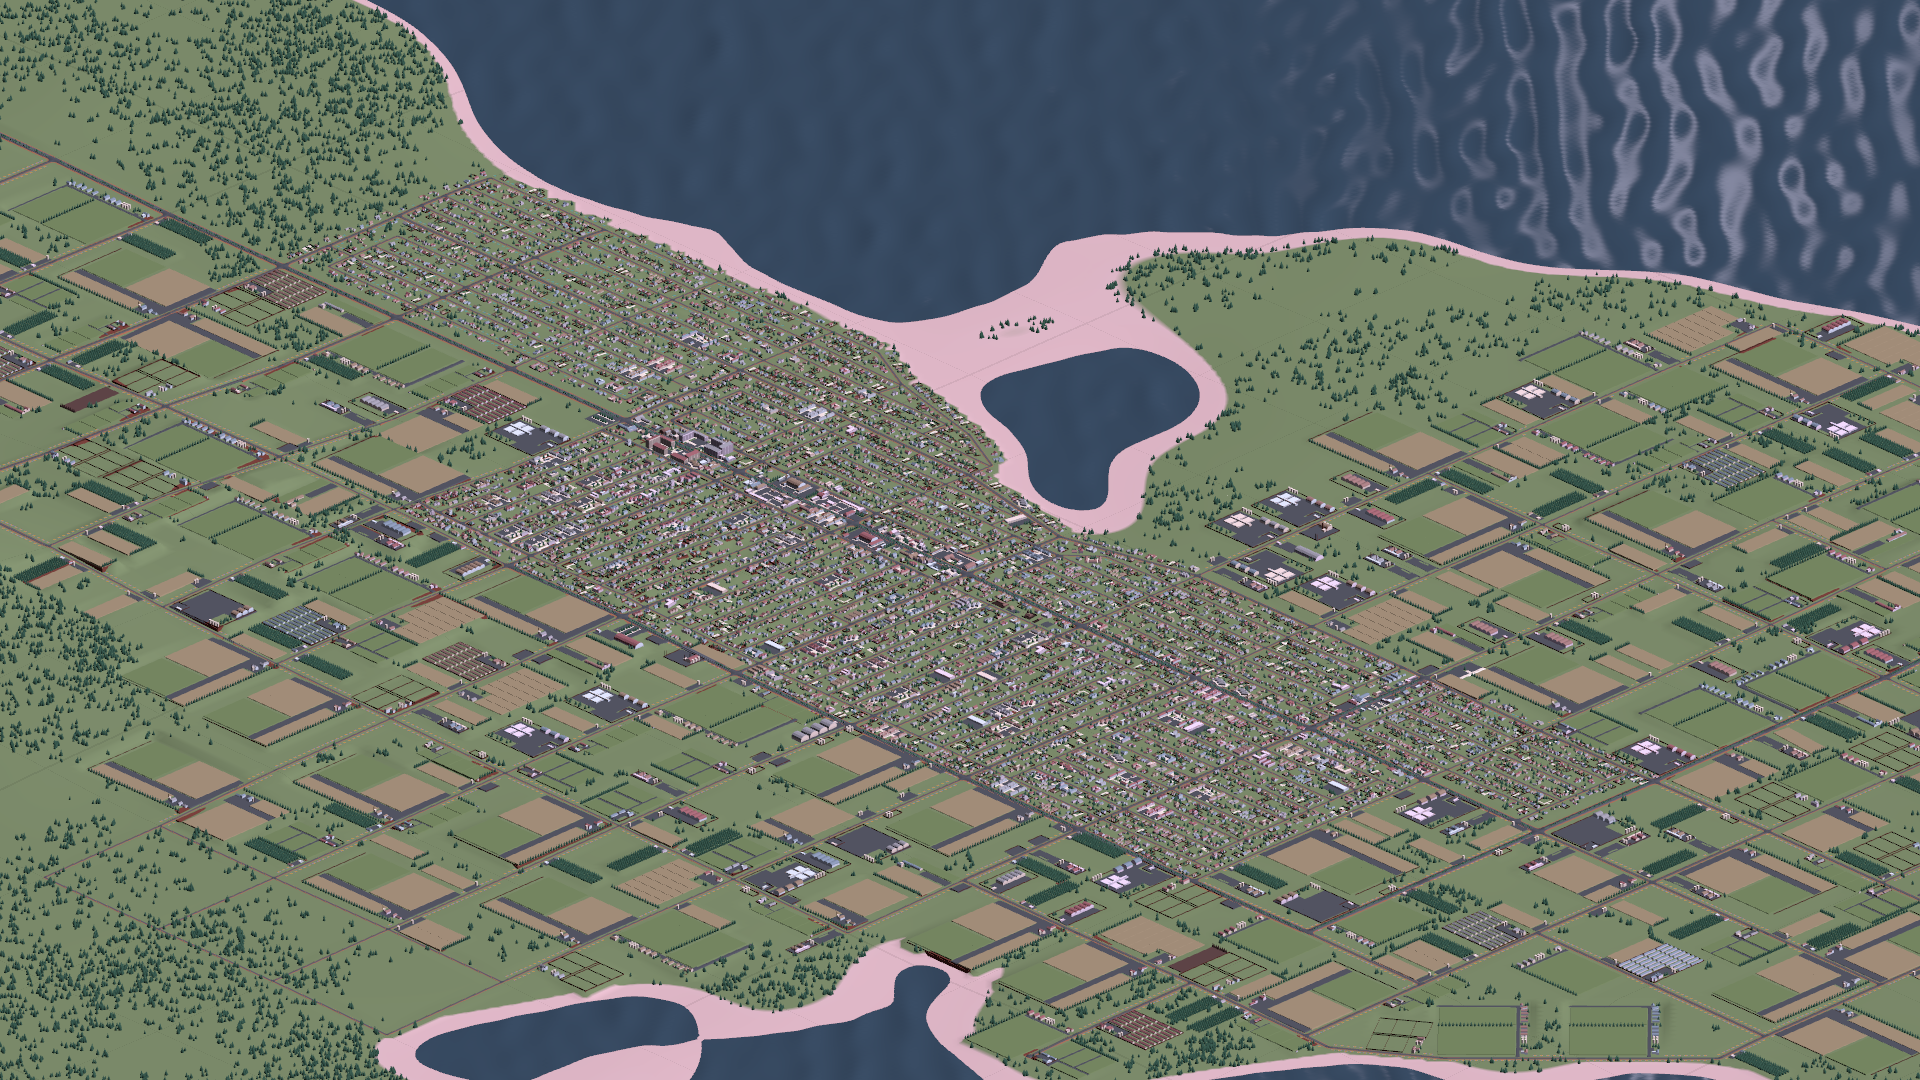 A small town, just shy of the 20,000 people needed to officially be a city.